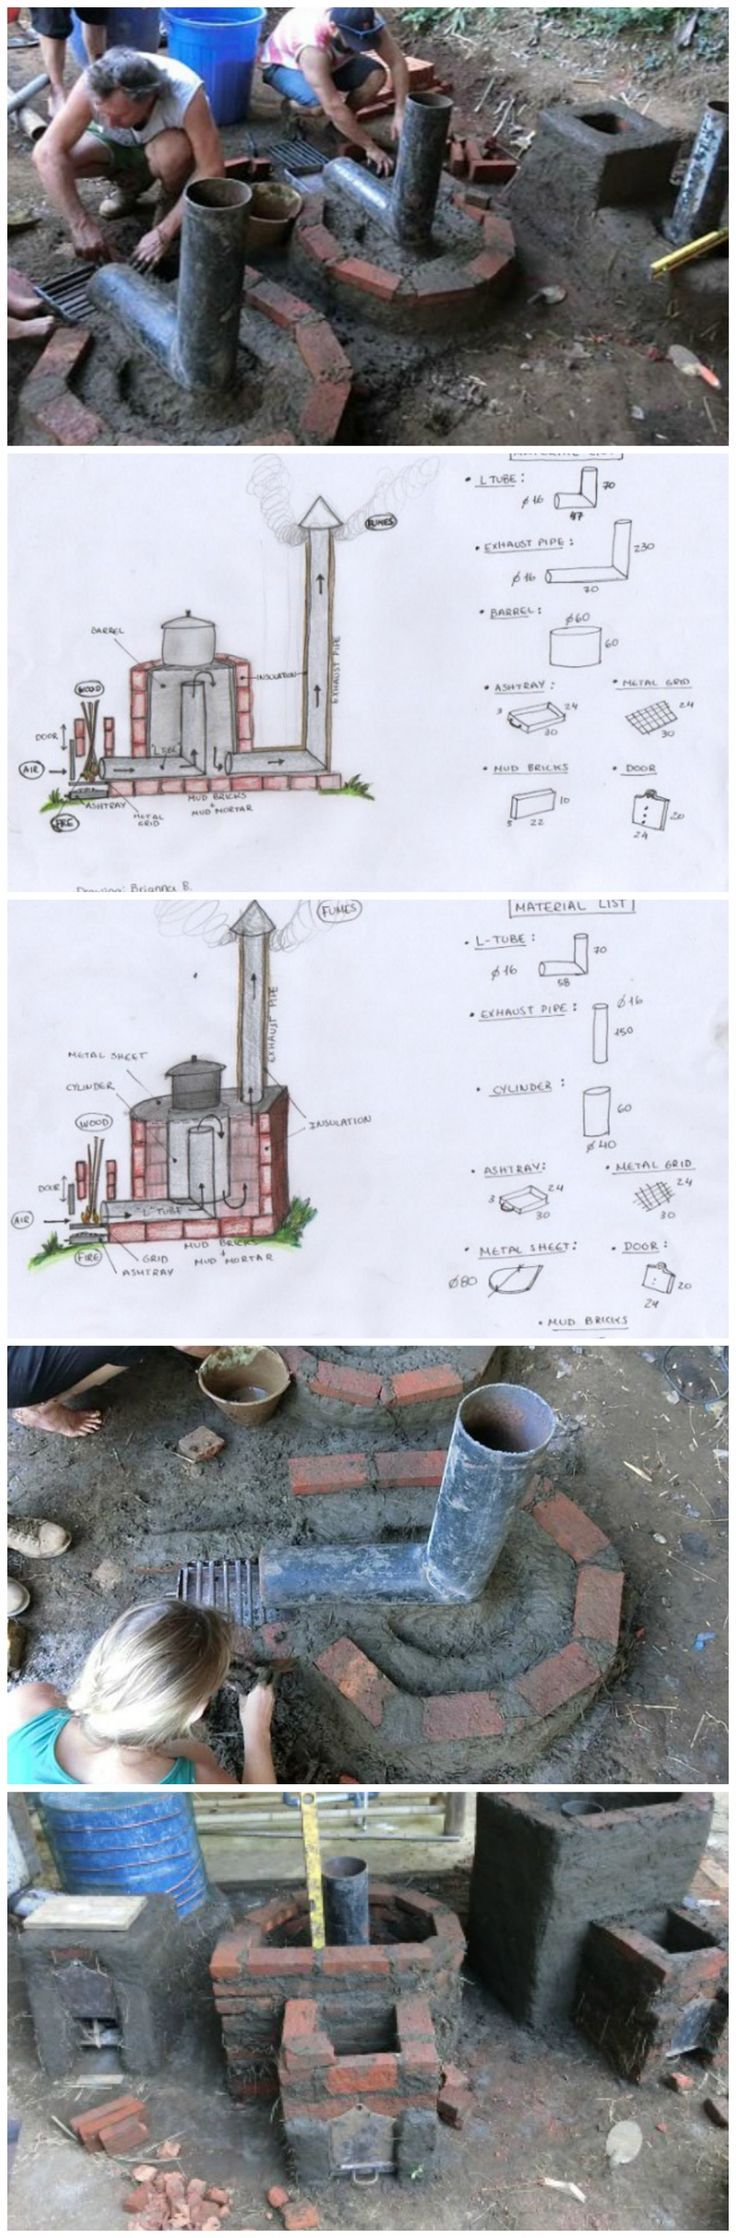 Learn How To Build A Rocket Stove For Earth Friendly Cooking [video]